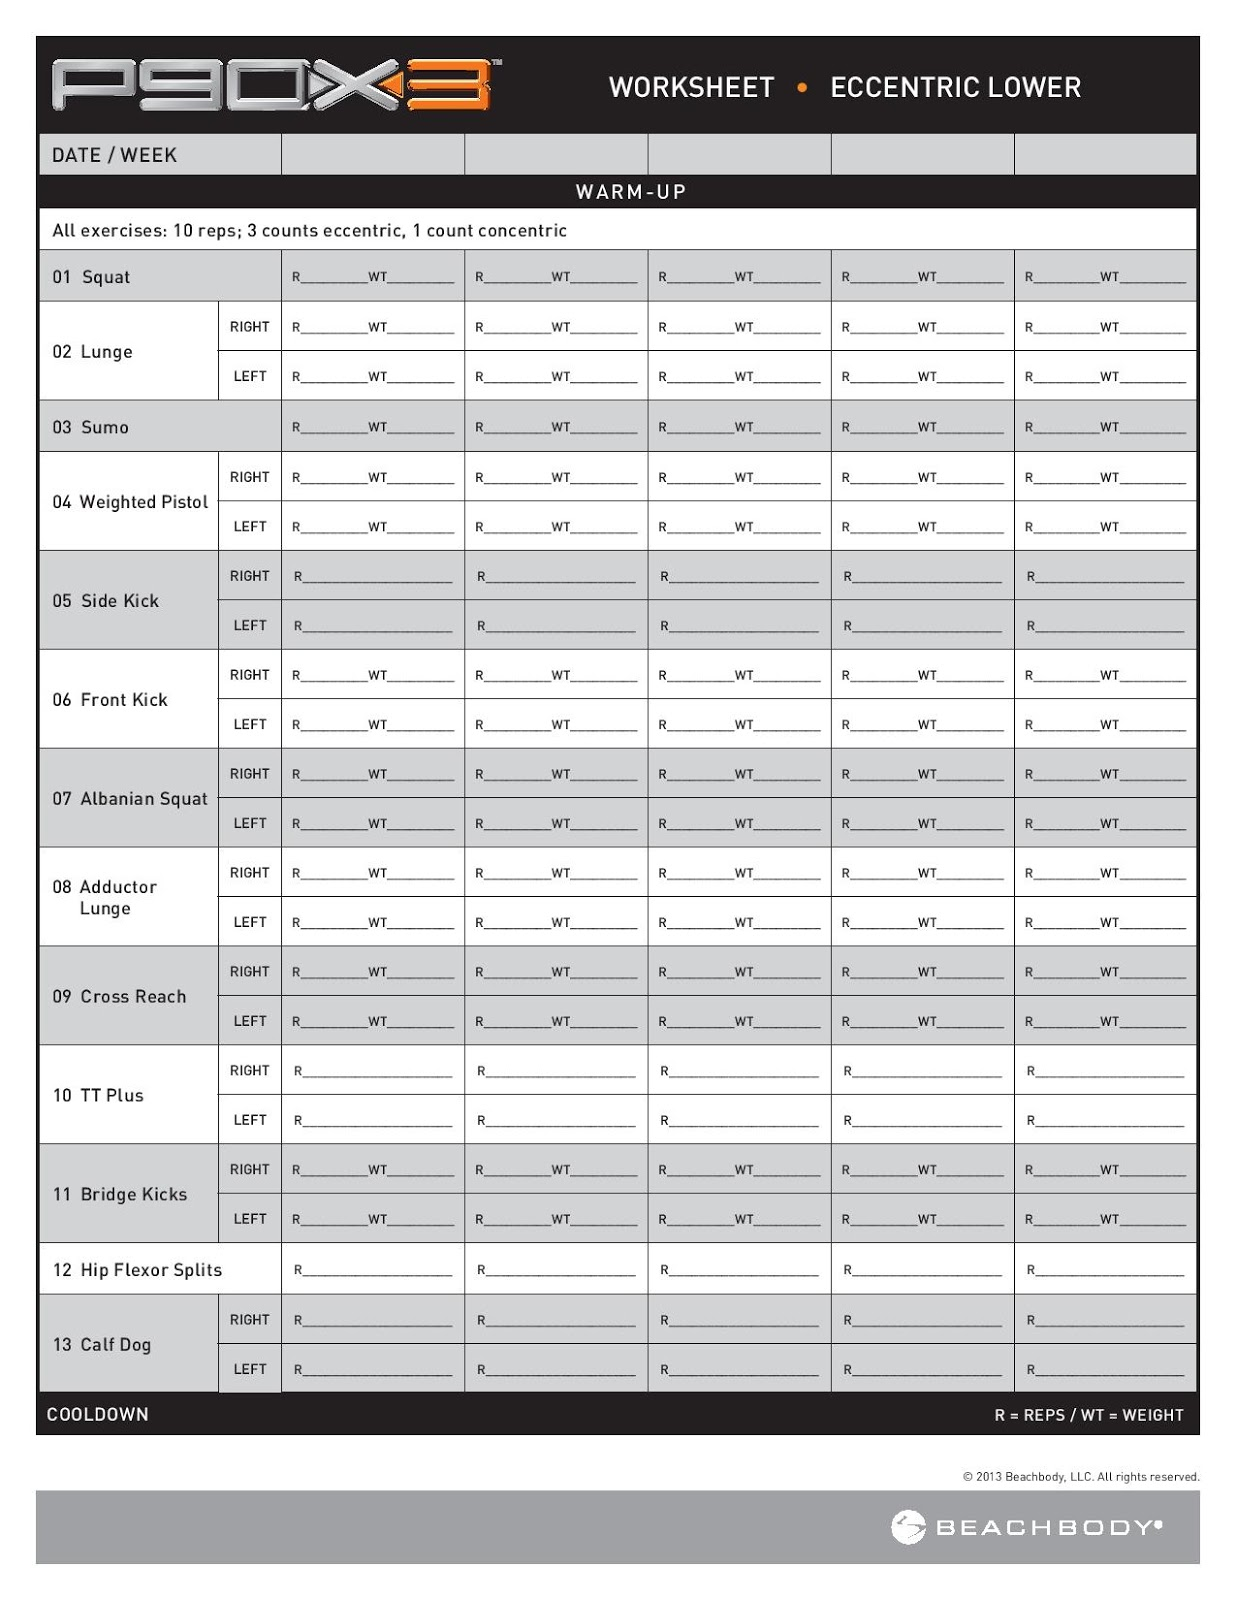 Worksheet P90x3 Worksheets p90x3 worksheets workouts here below is the worksheet for eccentric upper